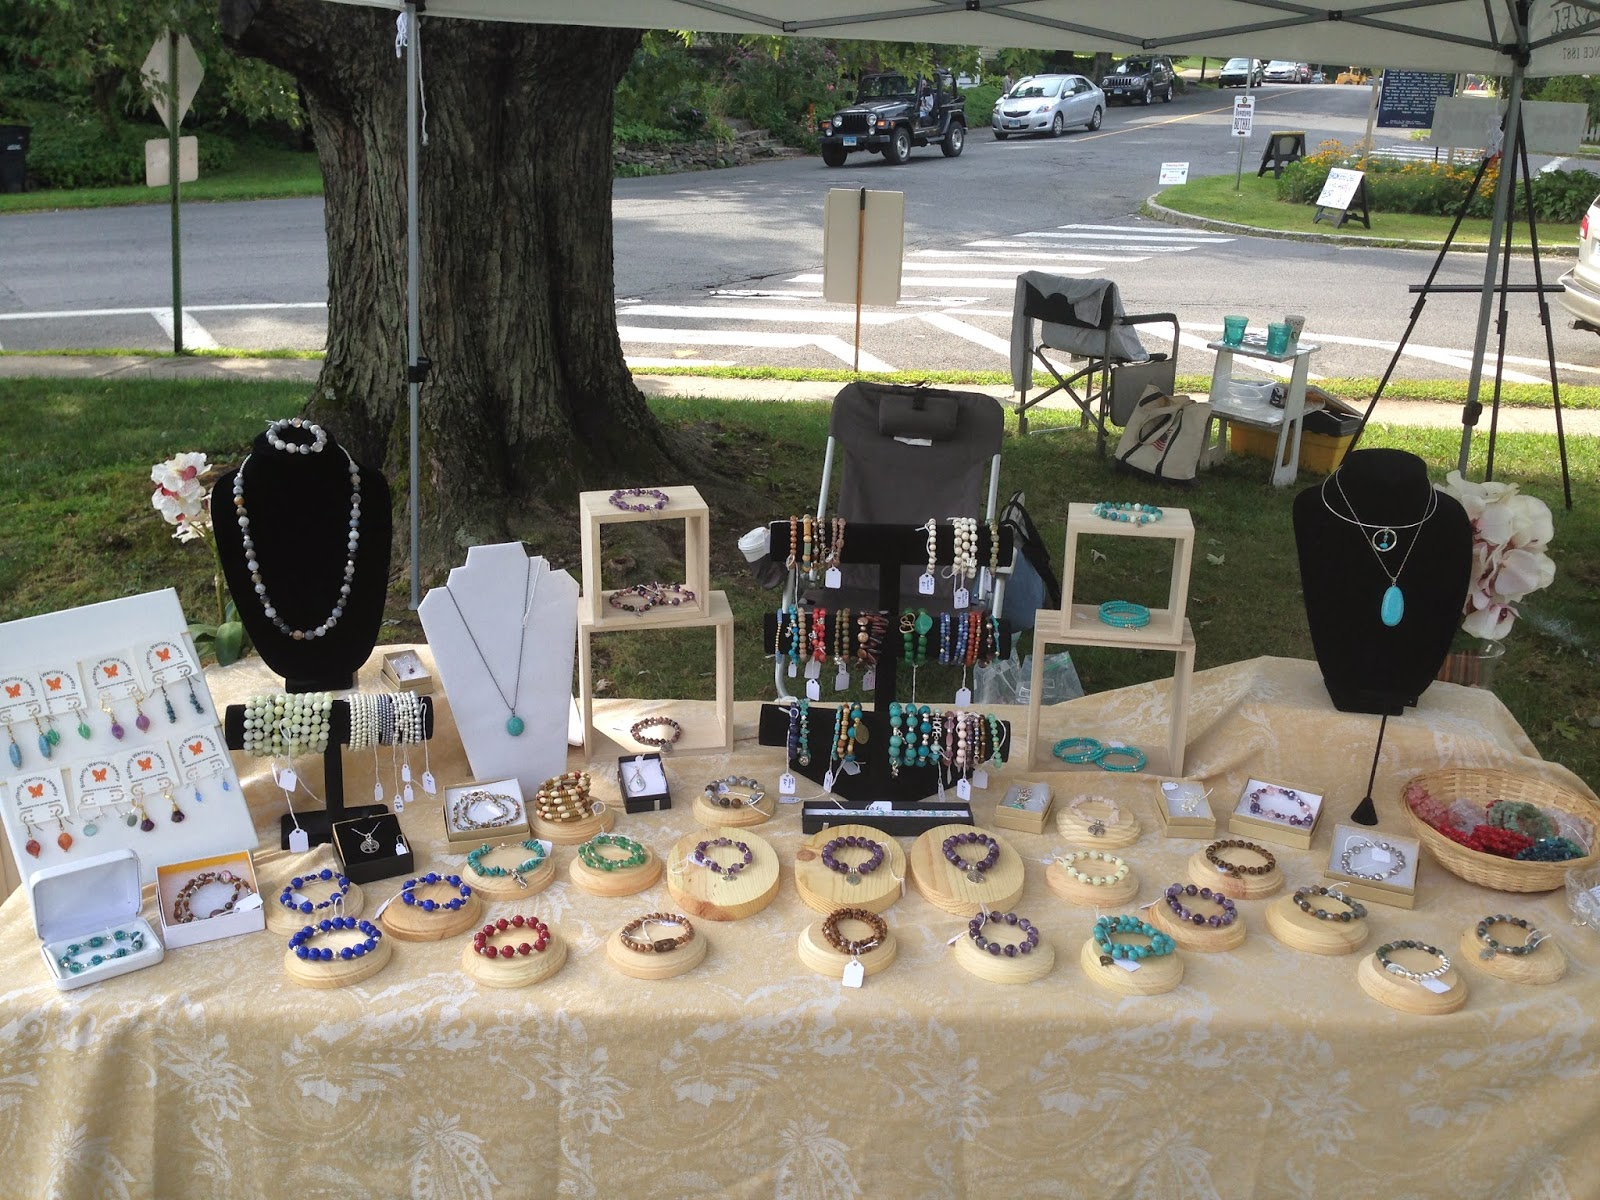 Butterfly warriors craft fairs and booth displays oh my for Craft shows in ohio